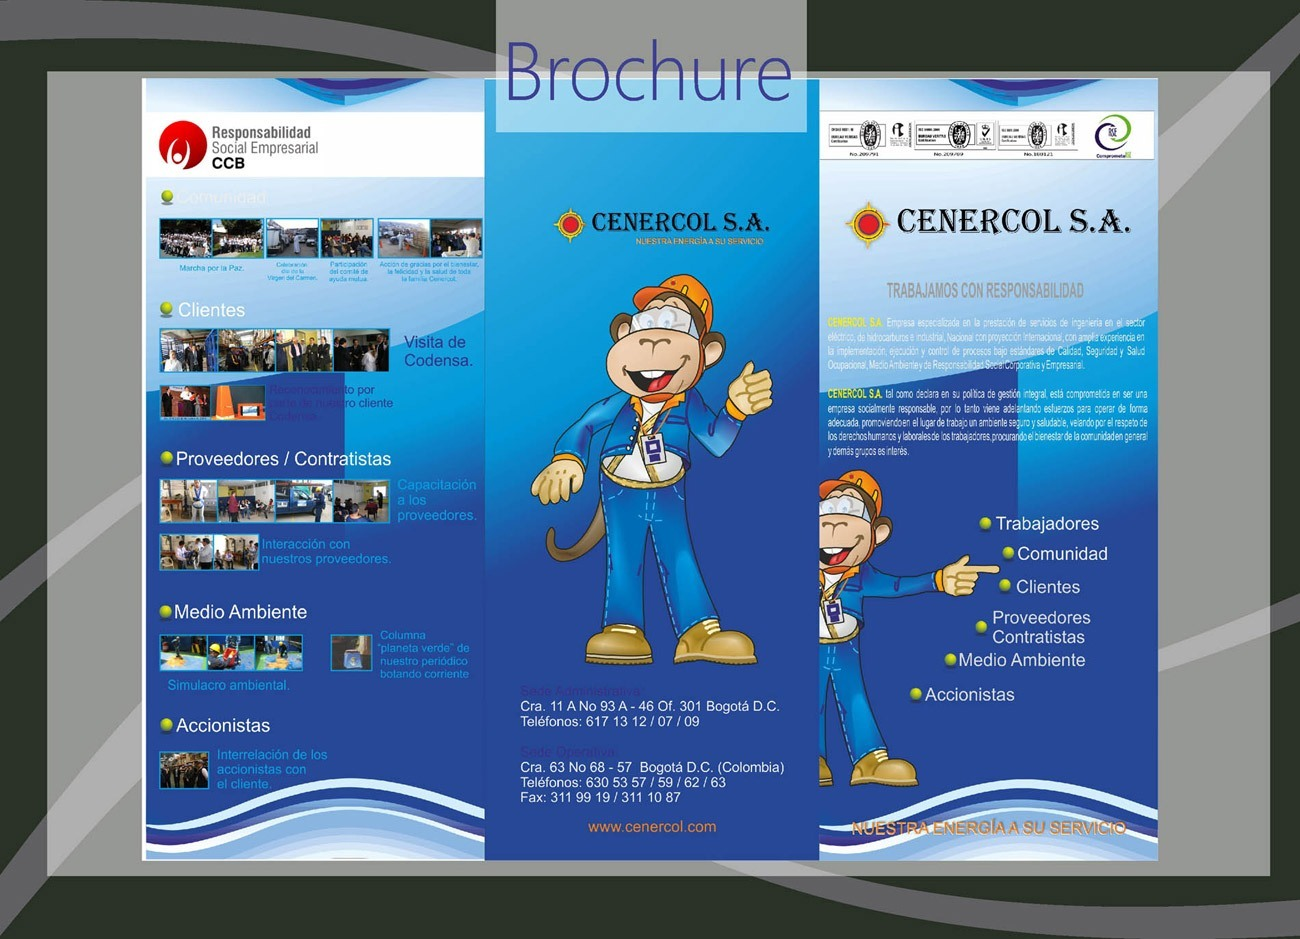 brochure_4x4_colores_plegable_papel_propalcote_ggcm